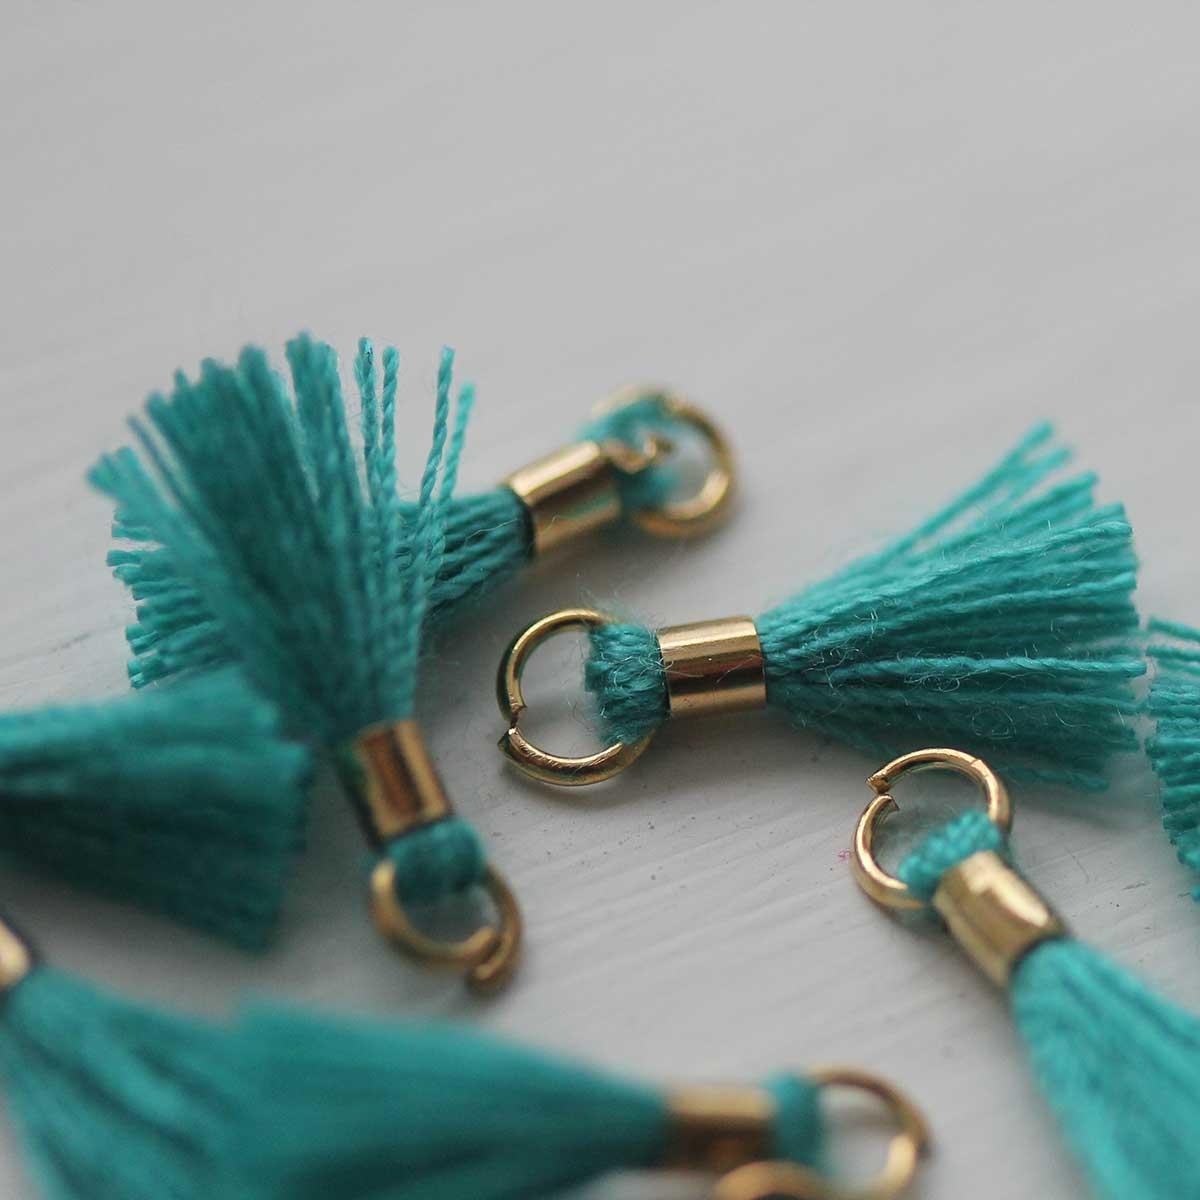 Small Tassel in Turquoise